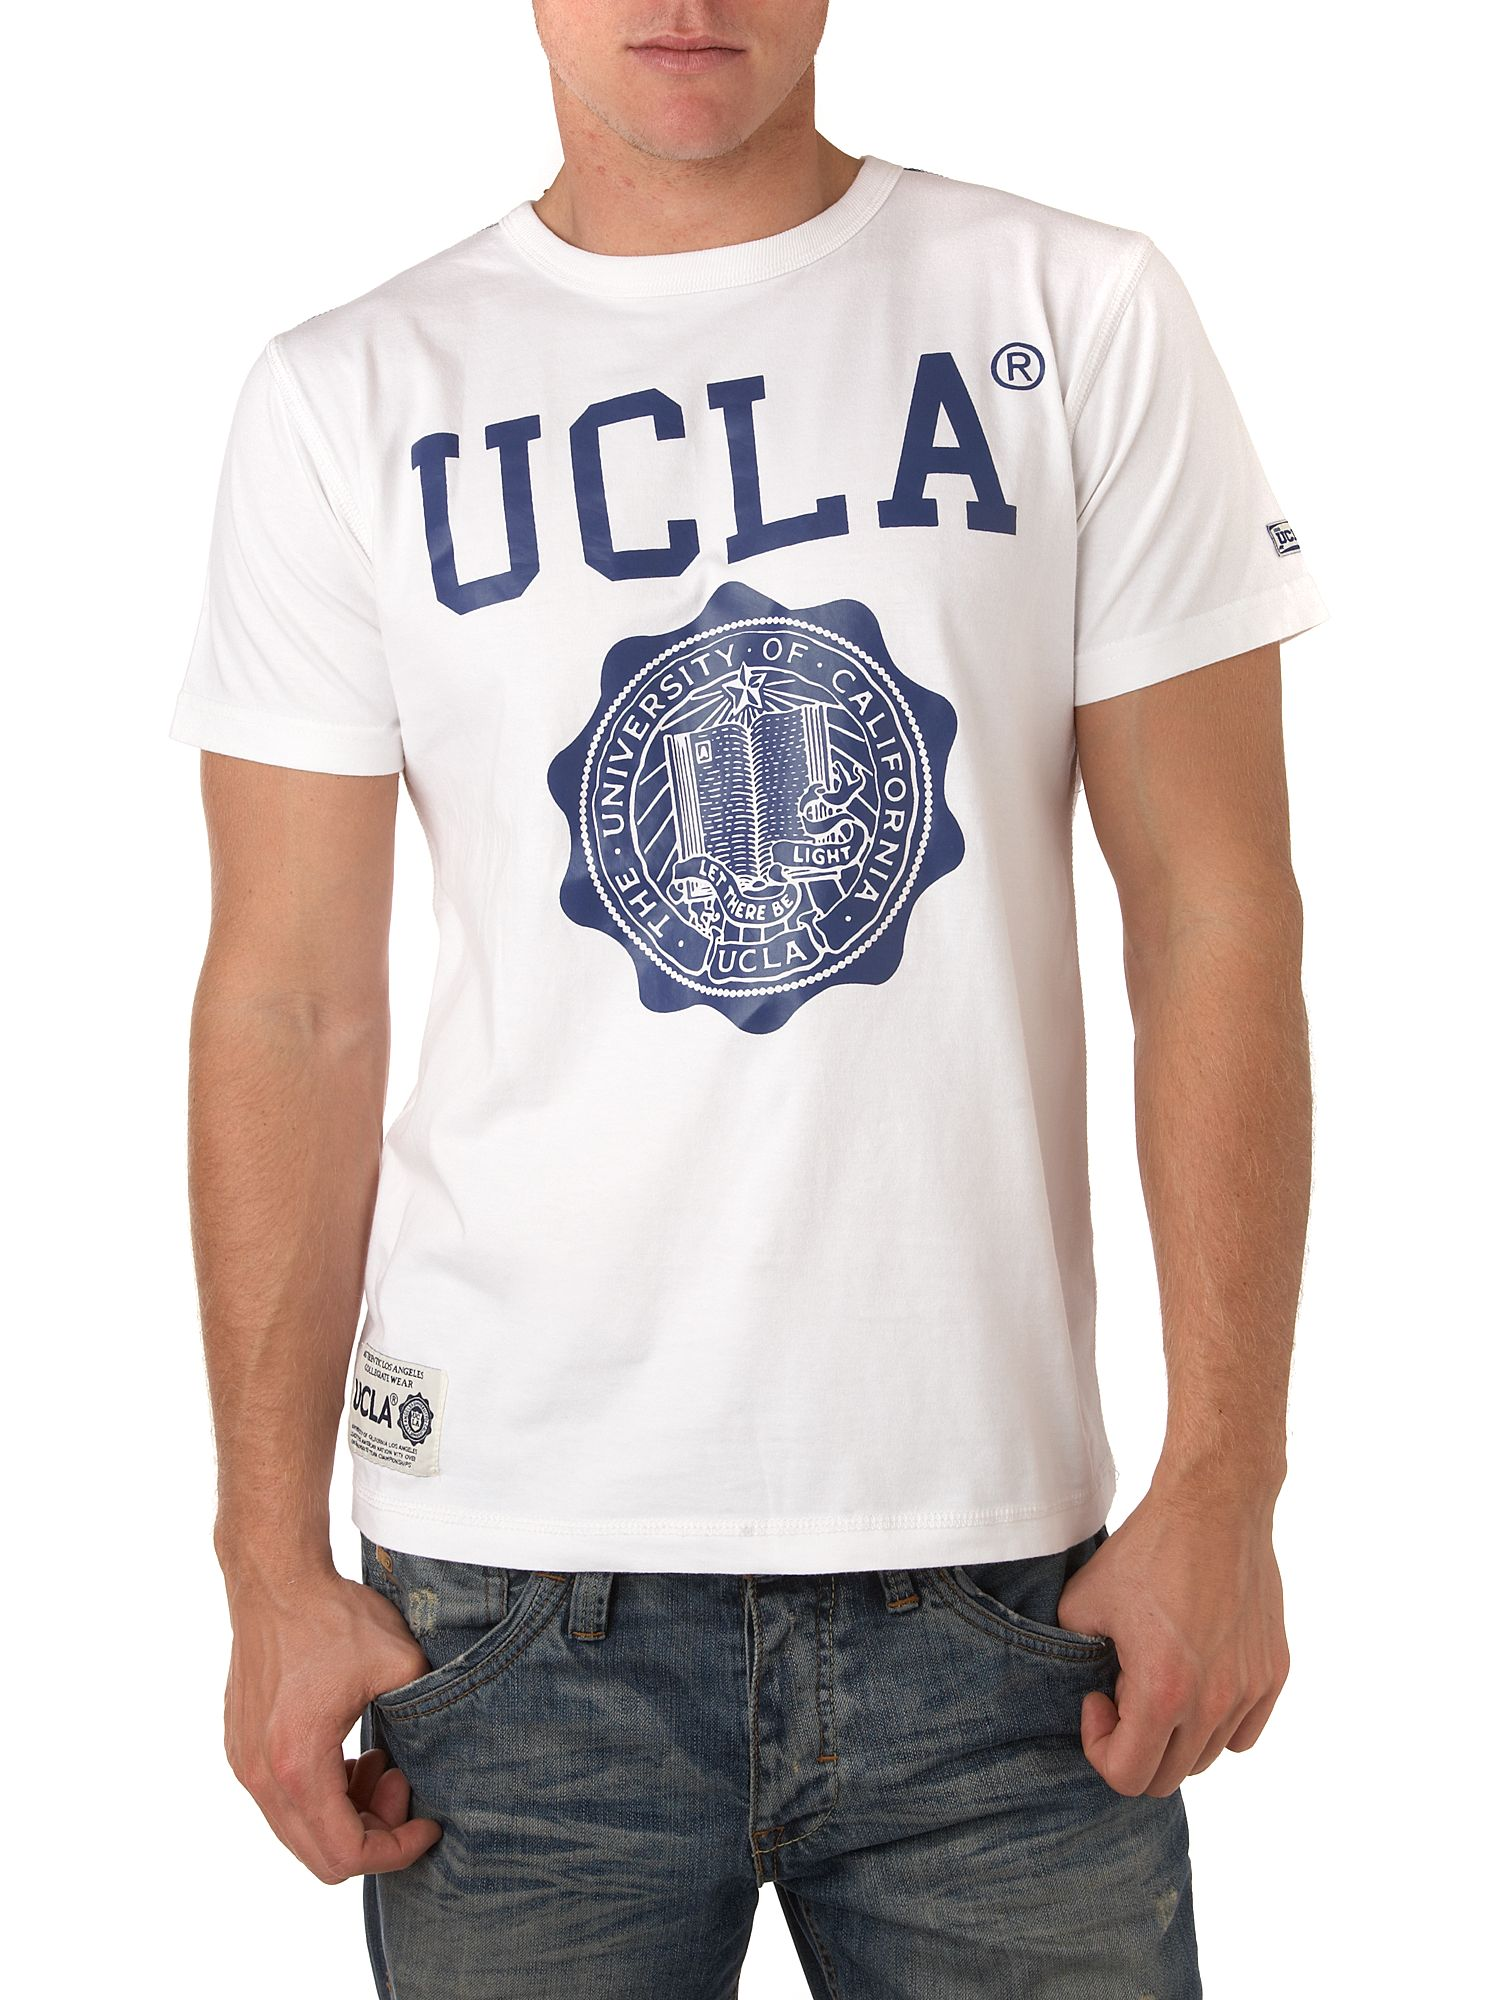 UCLA shield T-shirt White product image